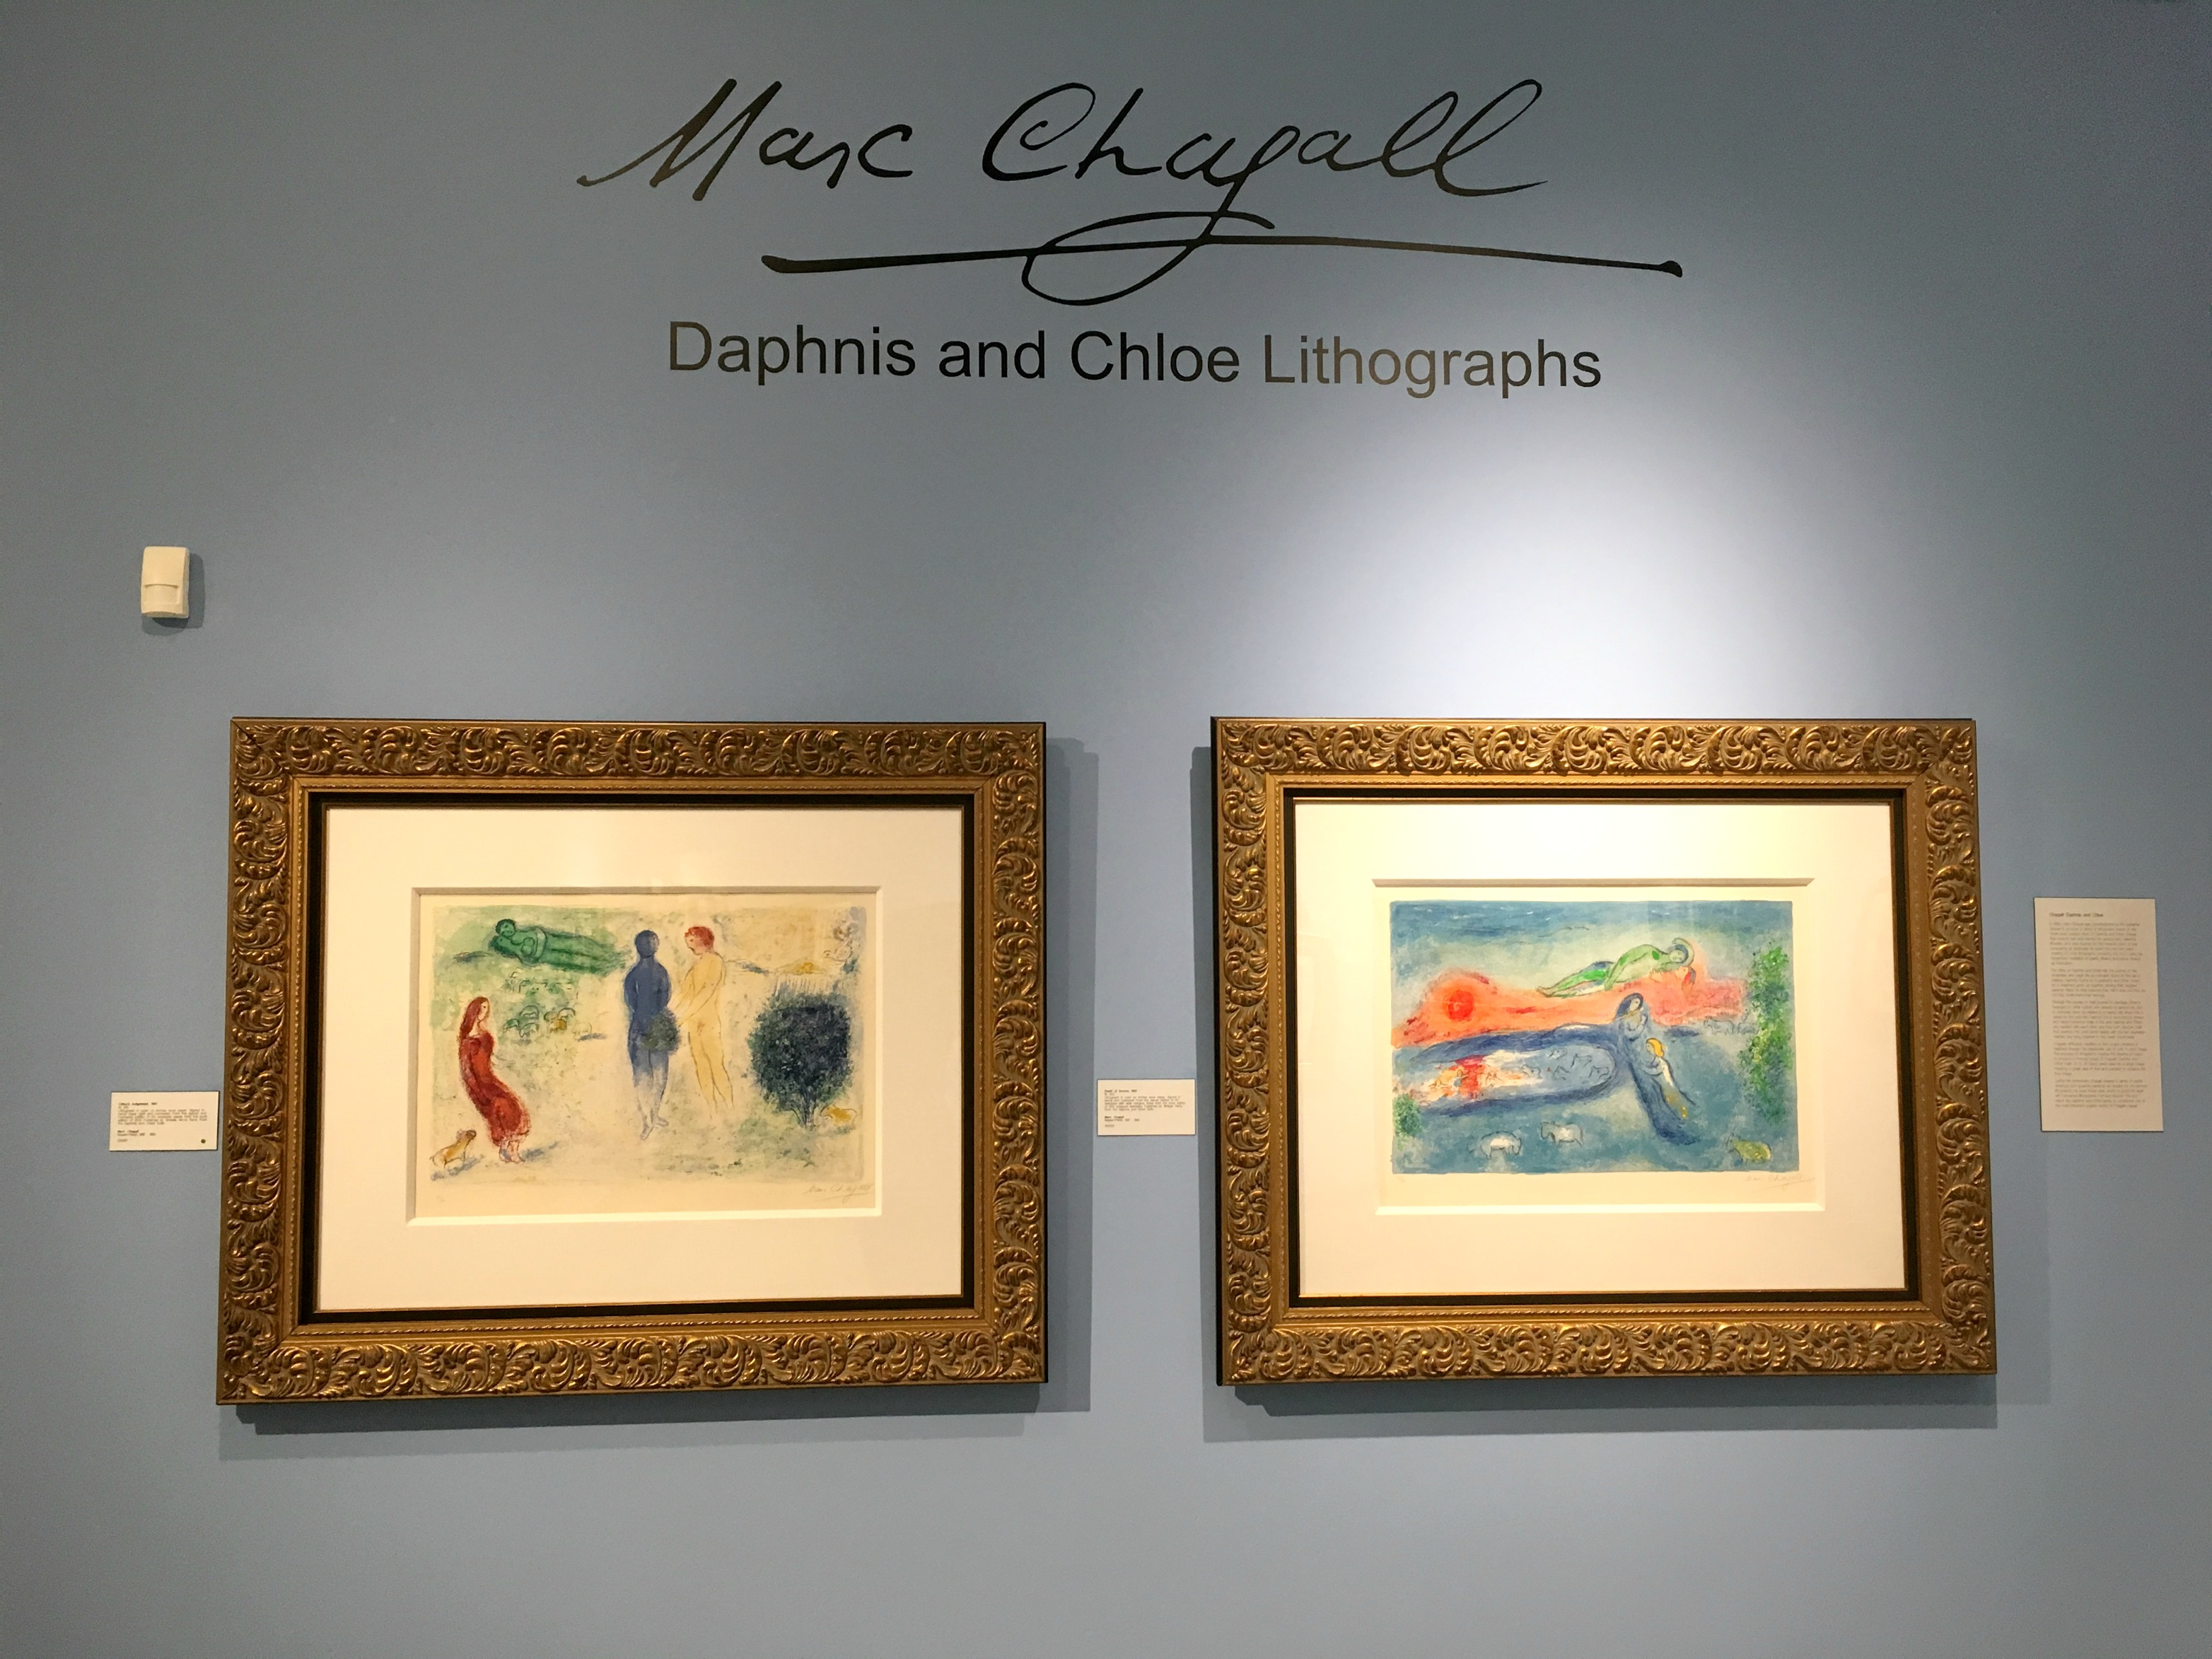 The Marc Chagall gallery at Park West Museum.